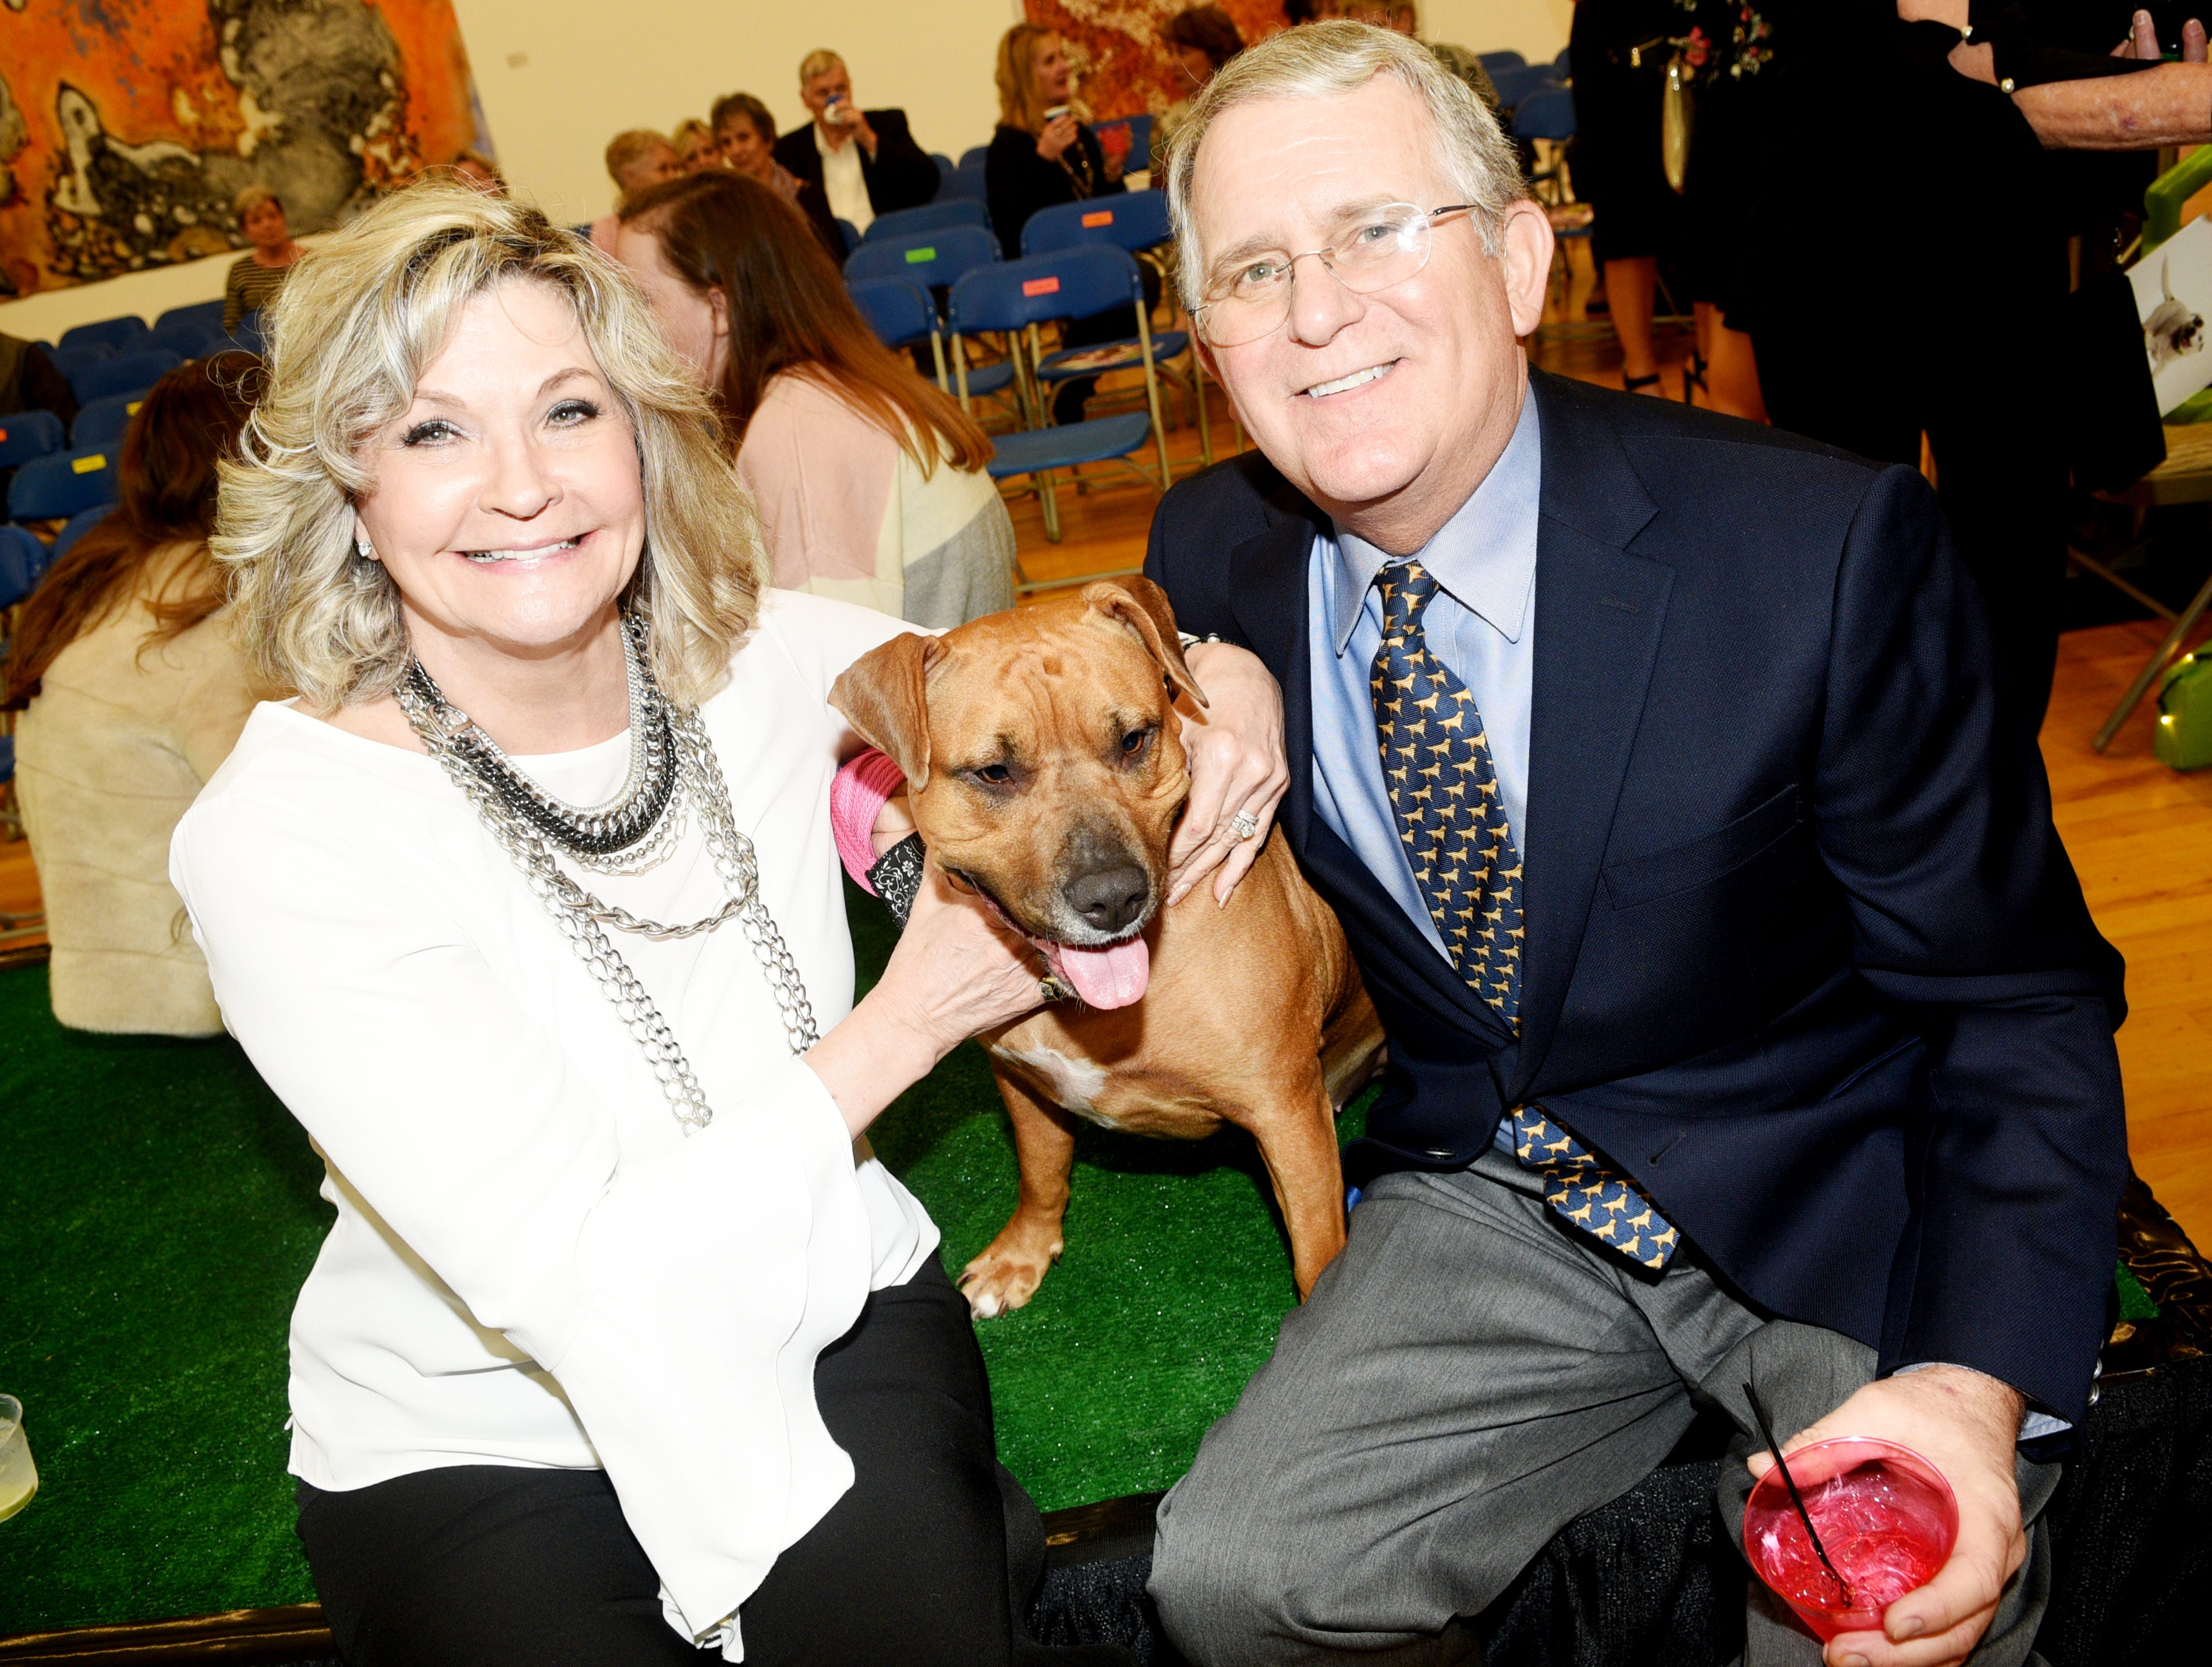 Best in Sheaux,  'Art of the Dog' hosted by Robinson's Rescue Low Cost Spay/Neuter Saturday evening at the Marlene Yu Museum.